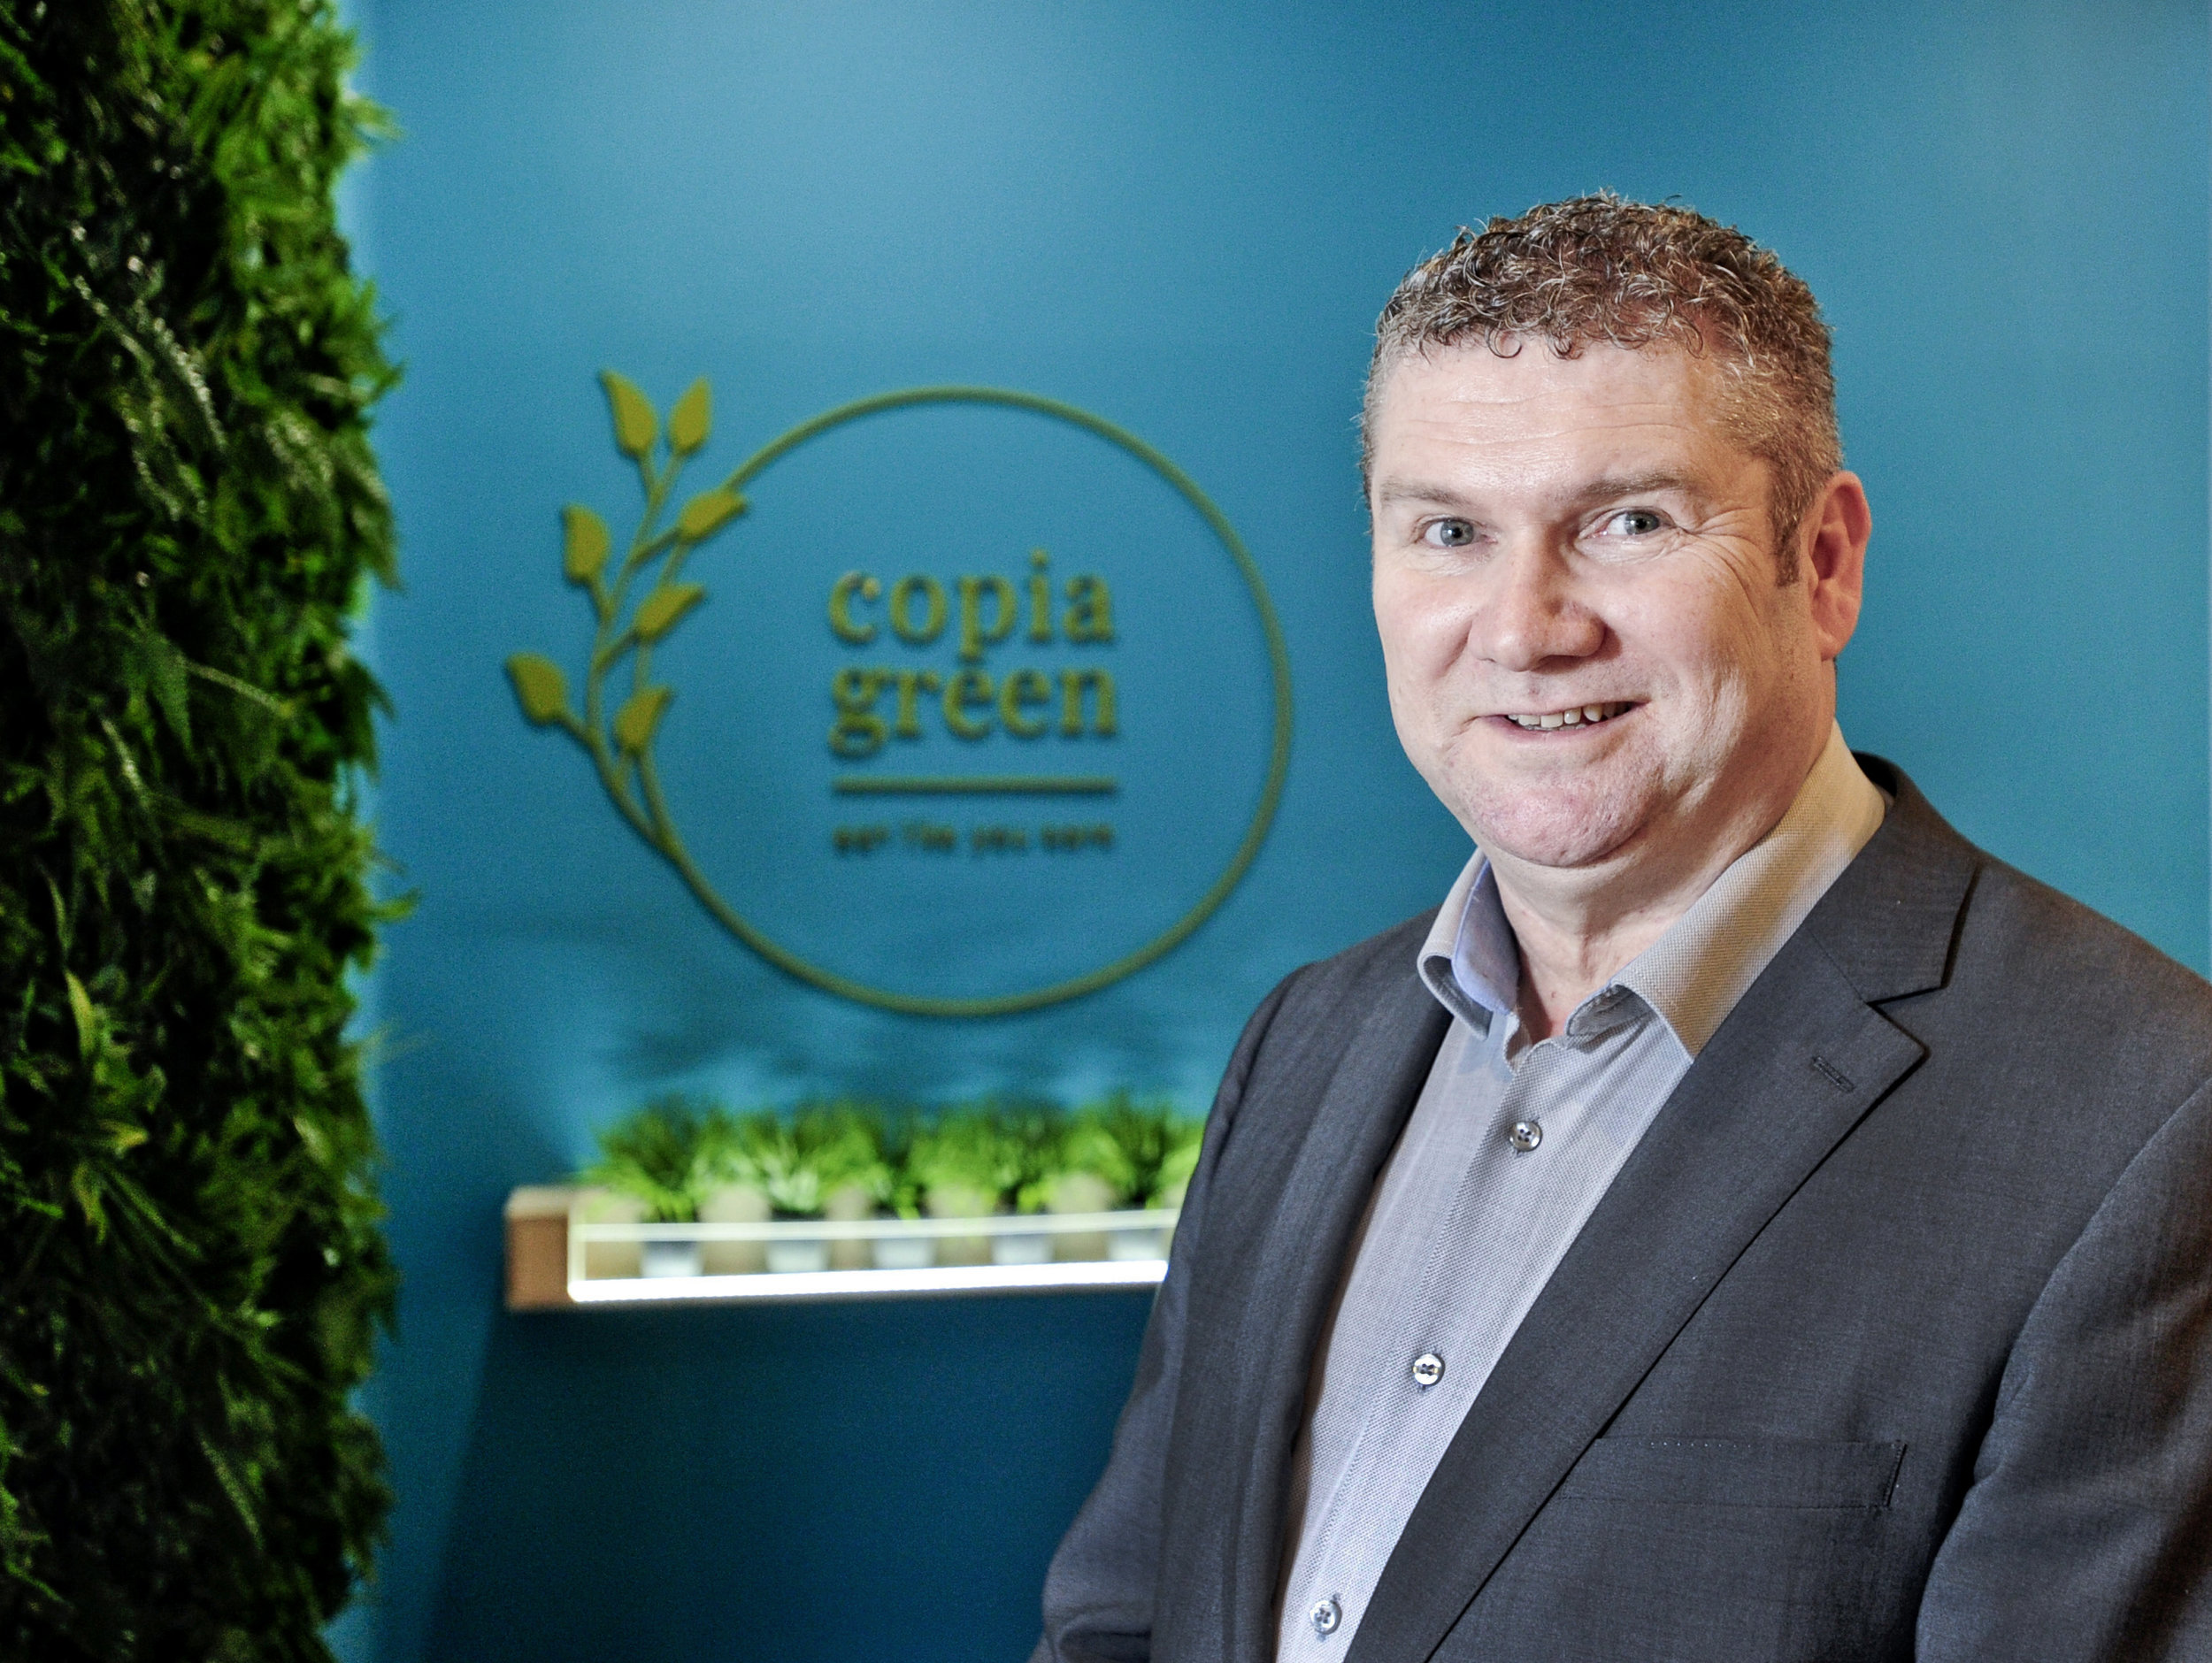 Copia Green is the brainchild of Pat O'Sullivan, Owner and Managing Director of Master Chefs